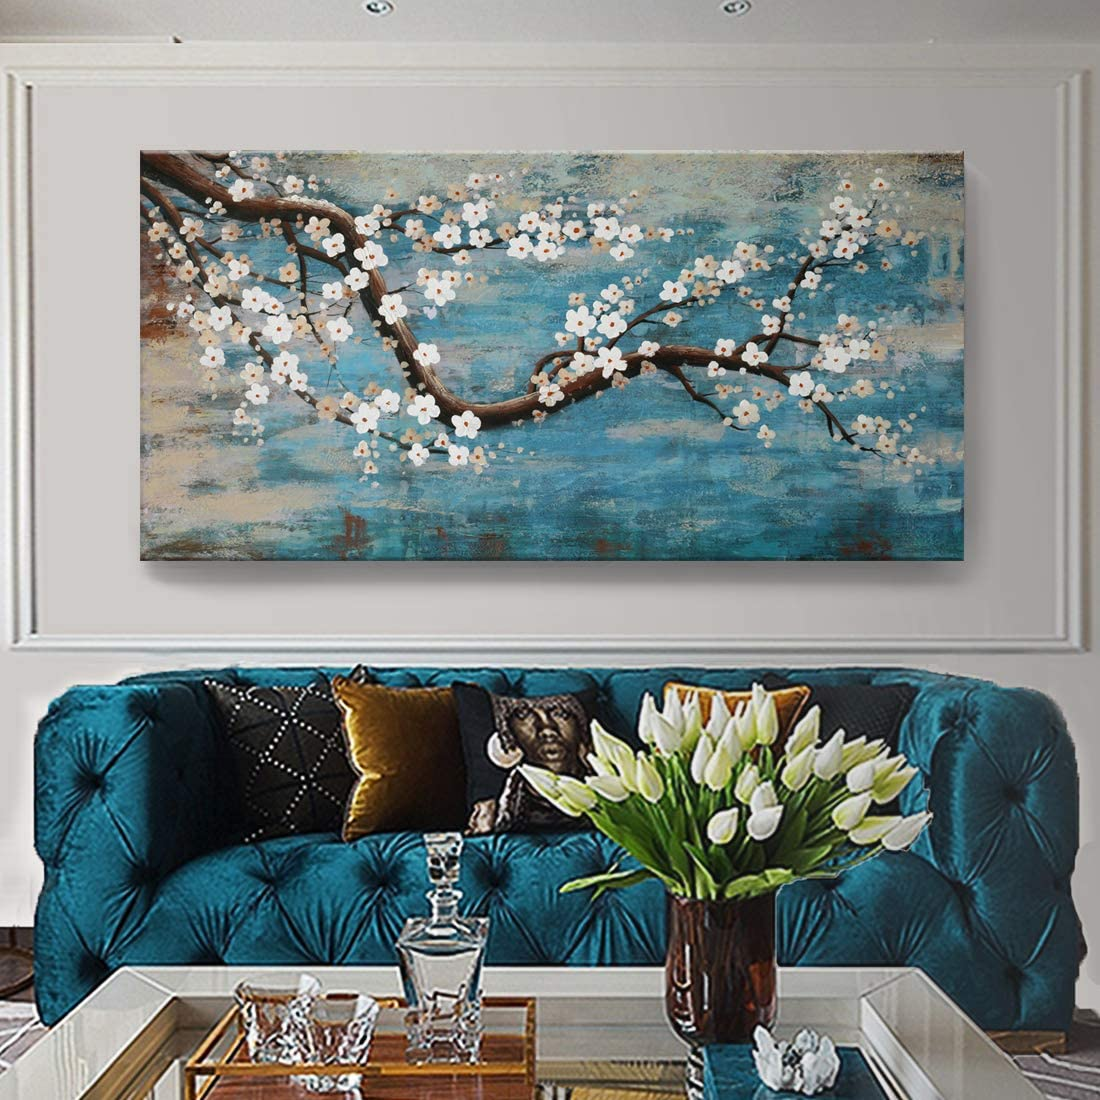 Amazon Com Huge Wall Art For Living Room 100 Hand Painted Flower Oil Painting On Canvas Gallery Wrapped Floral Plum Blossom Artwork For Bedroom Office Decor One Panel 60x30inch Large Paintings